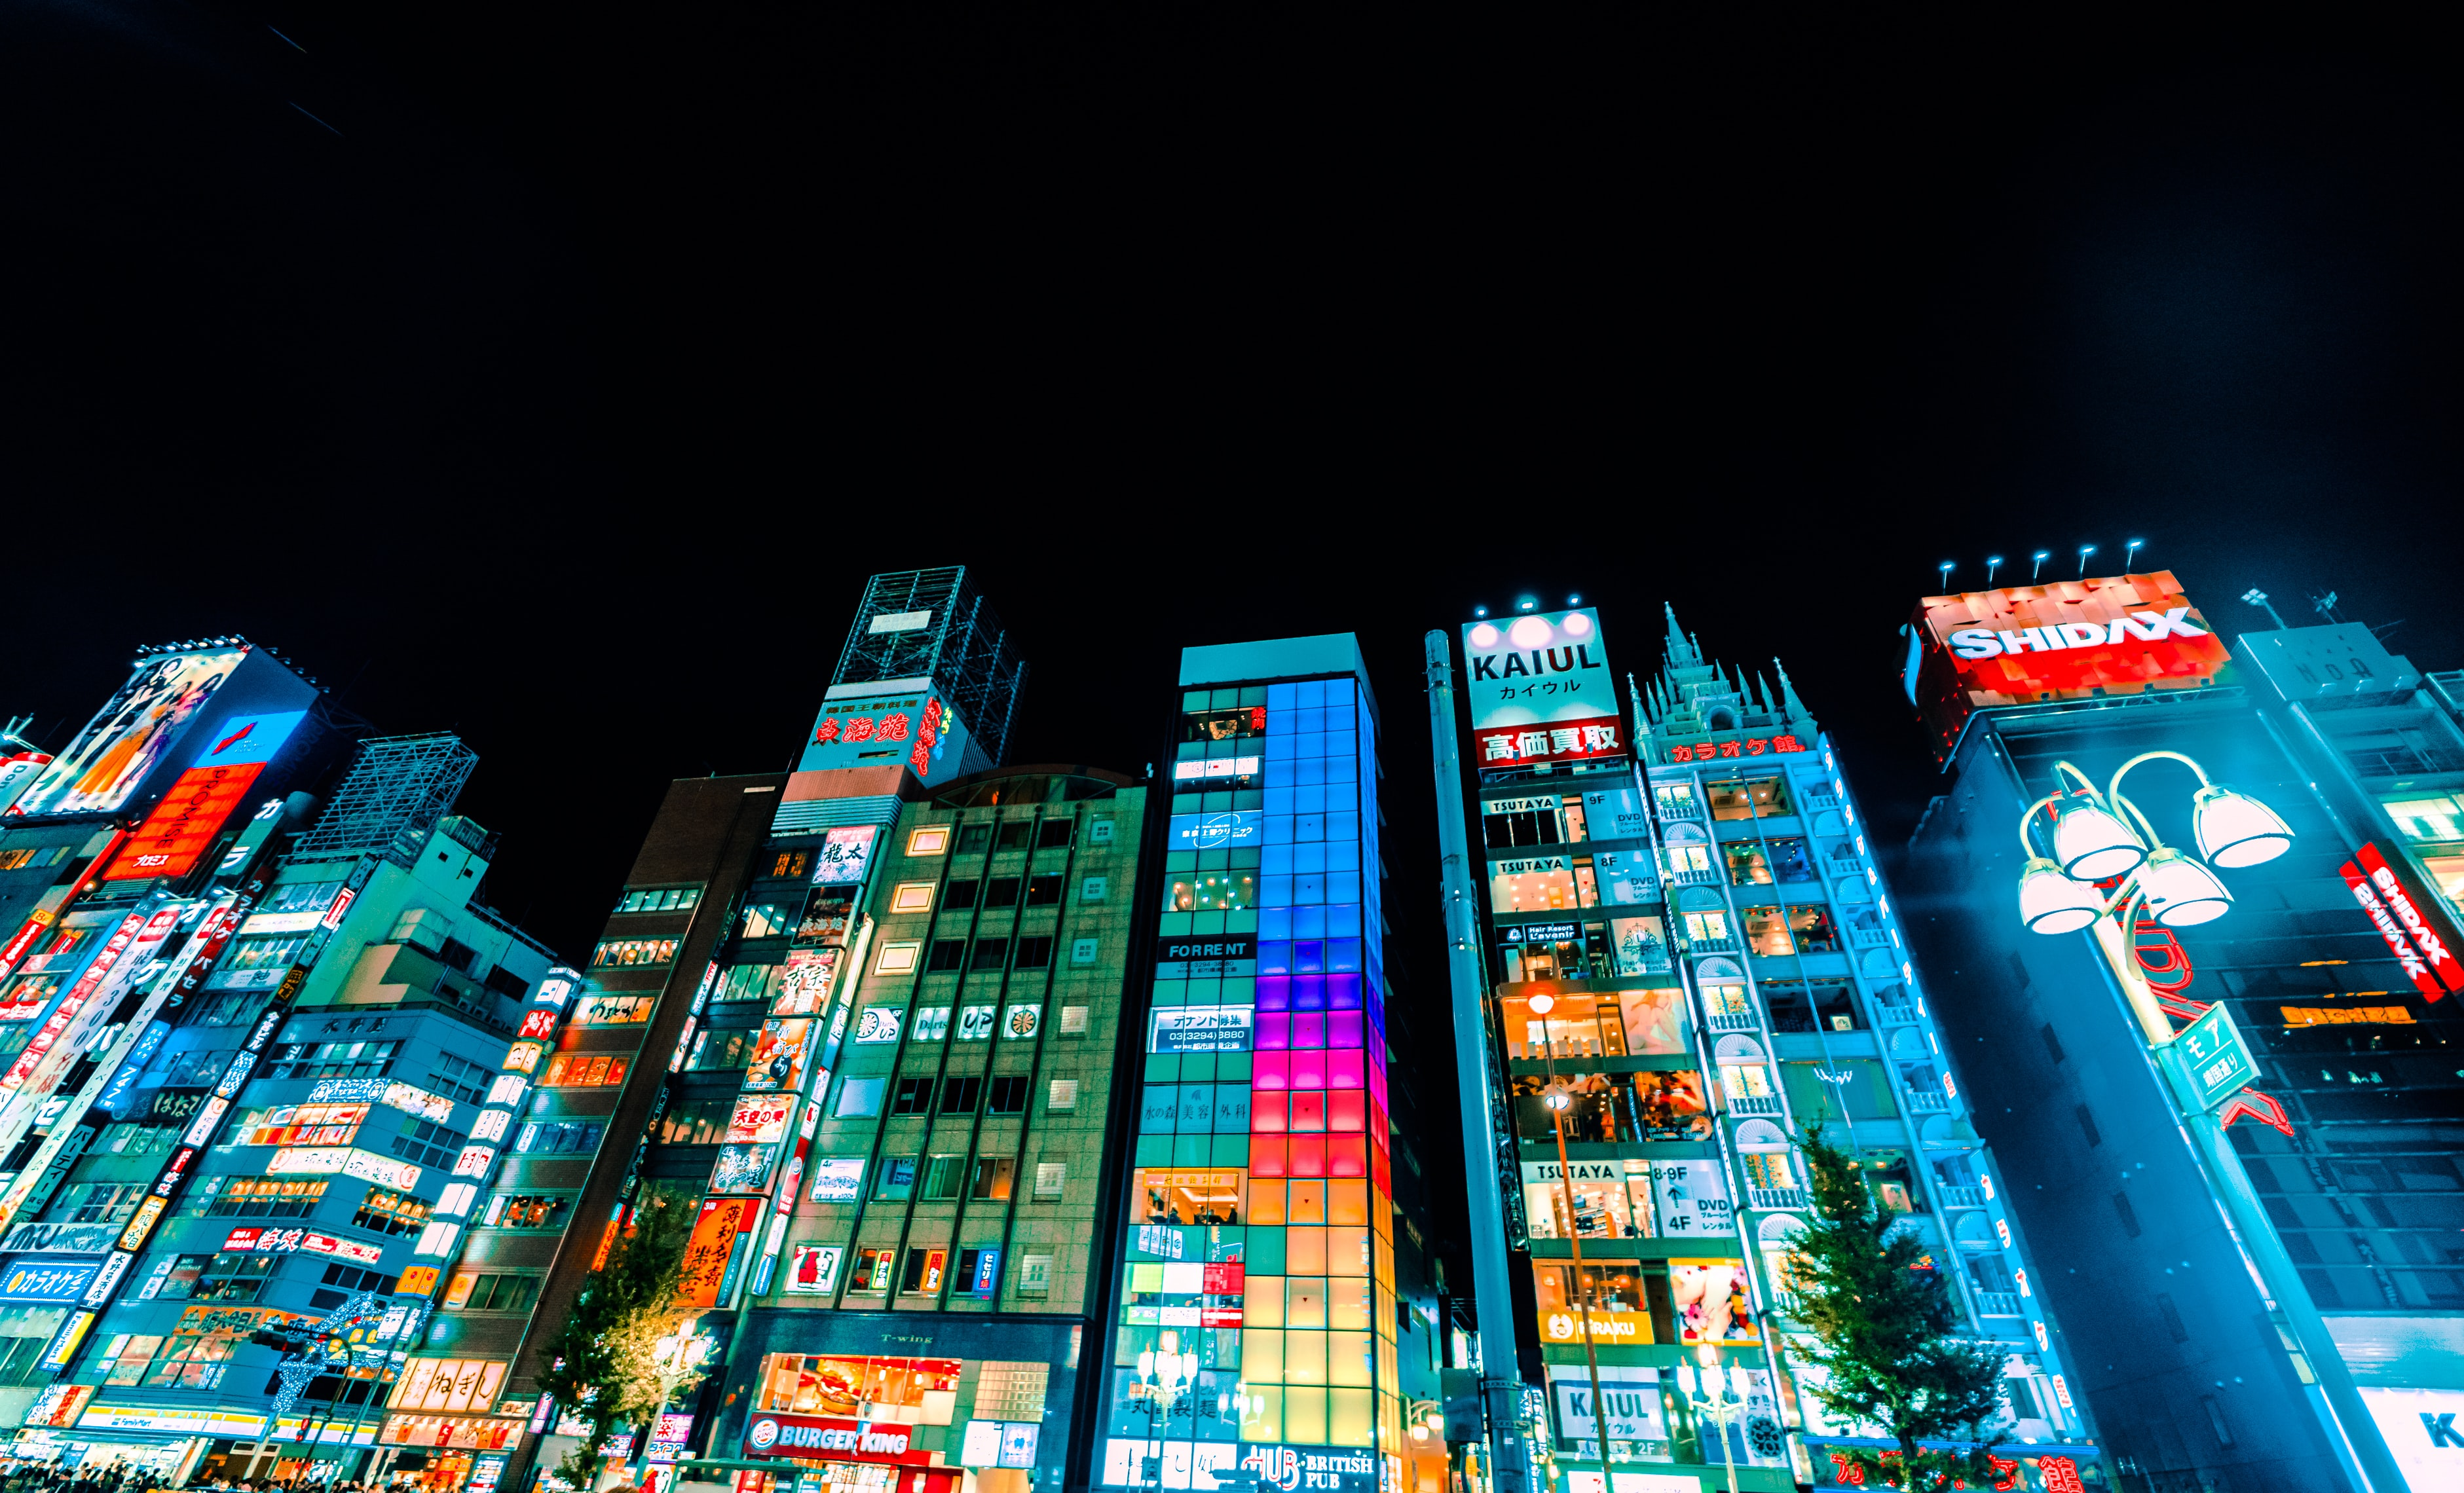 low-angle photography of buildings during nighttime